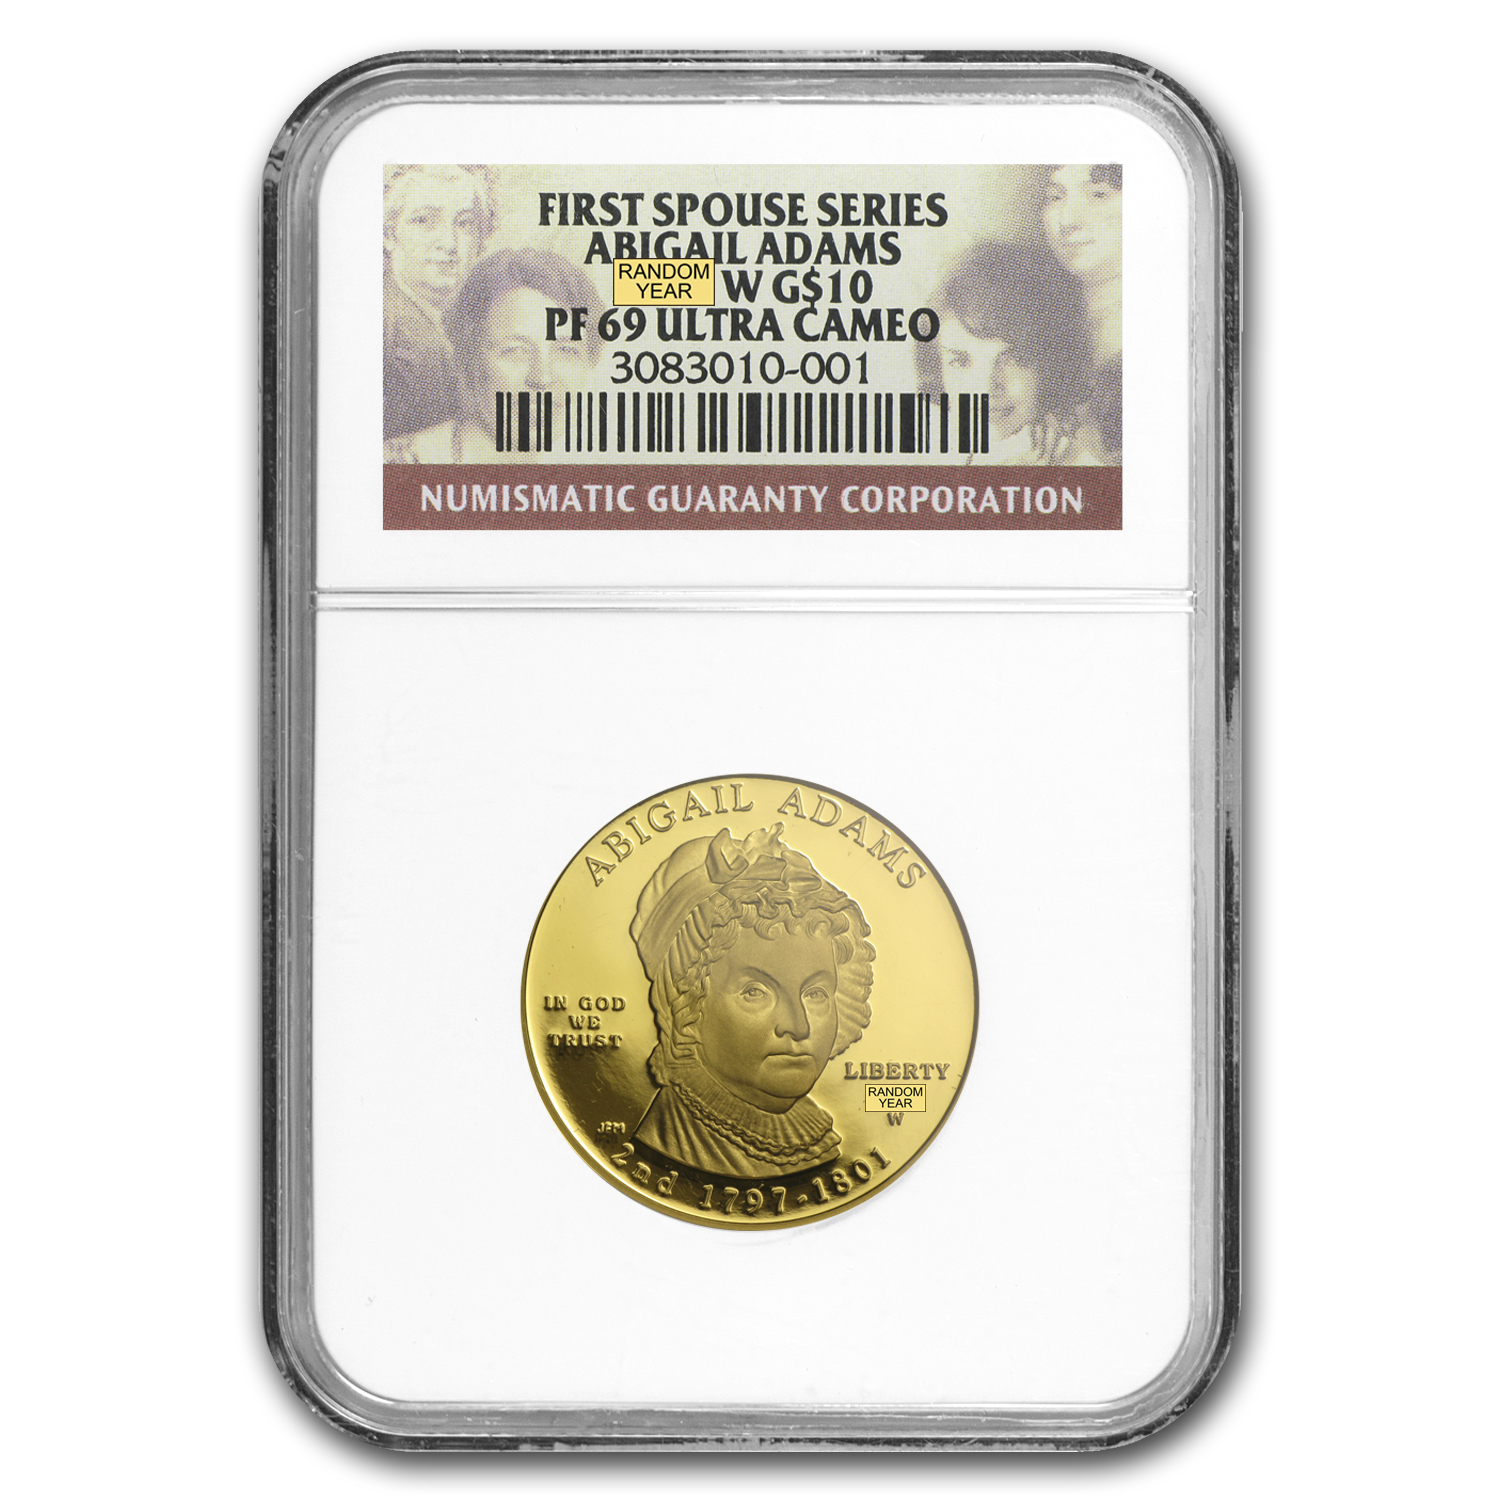 1/2 oz Proof Gold First Spouse Coins PF-69 NGC (Random Year)